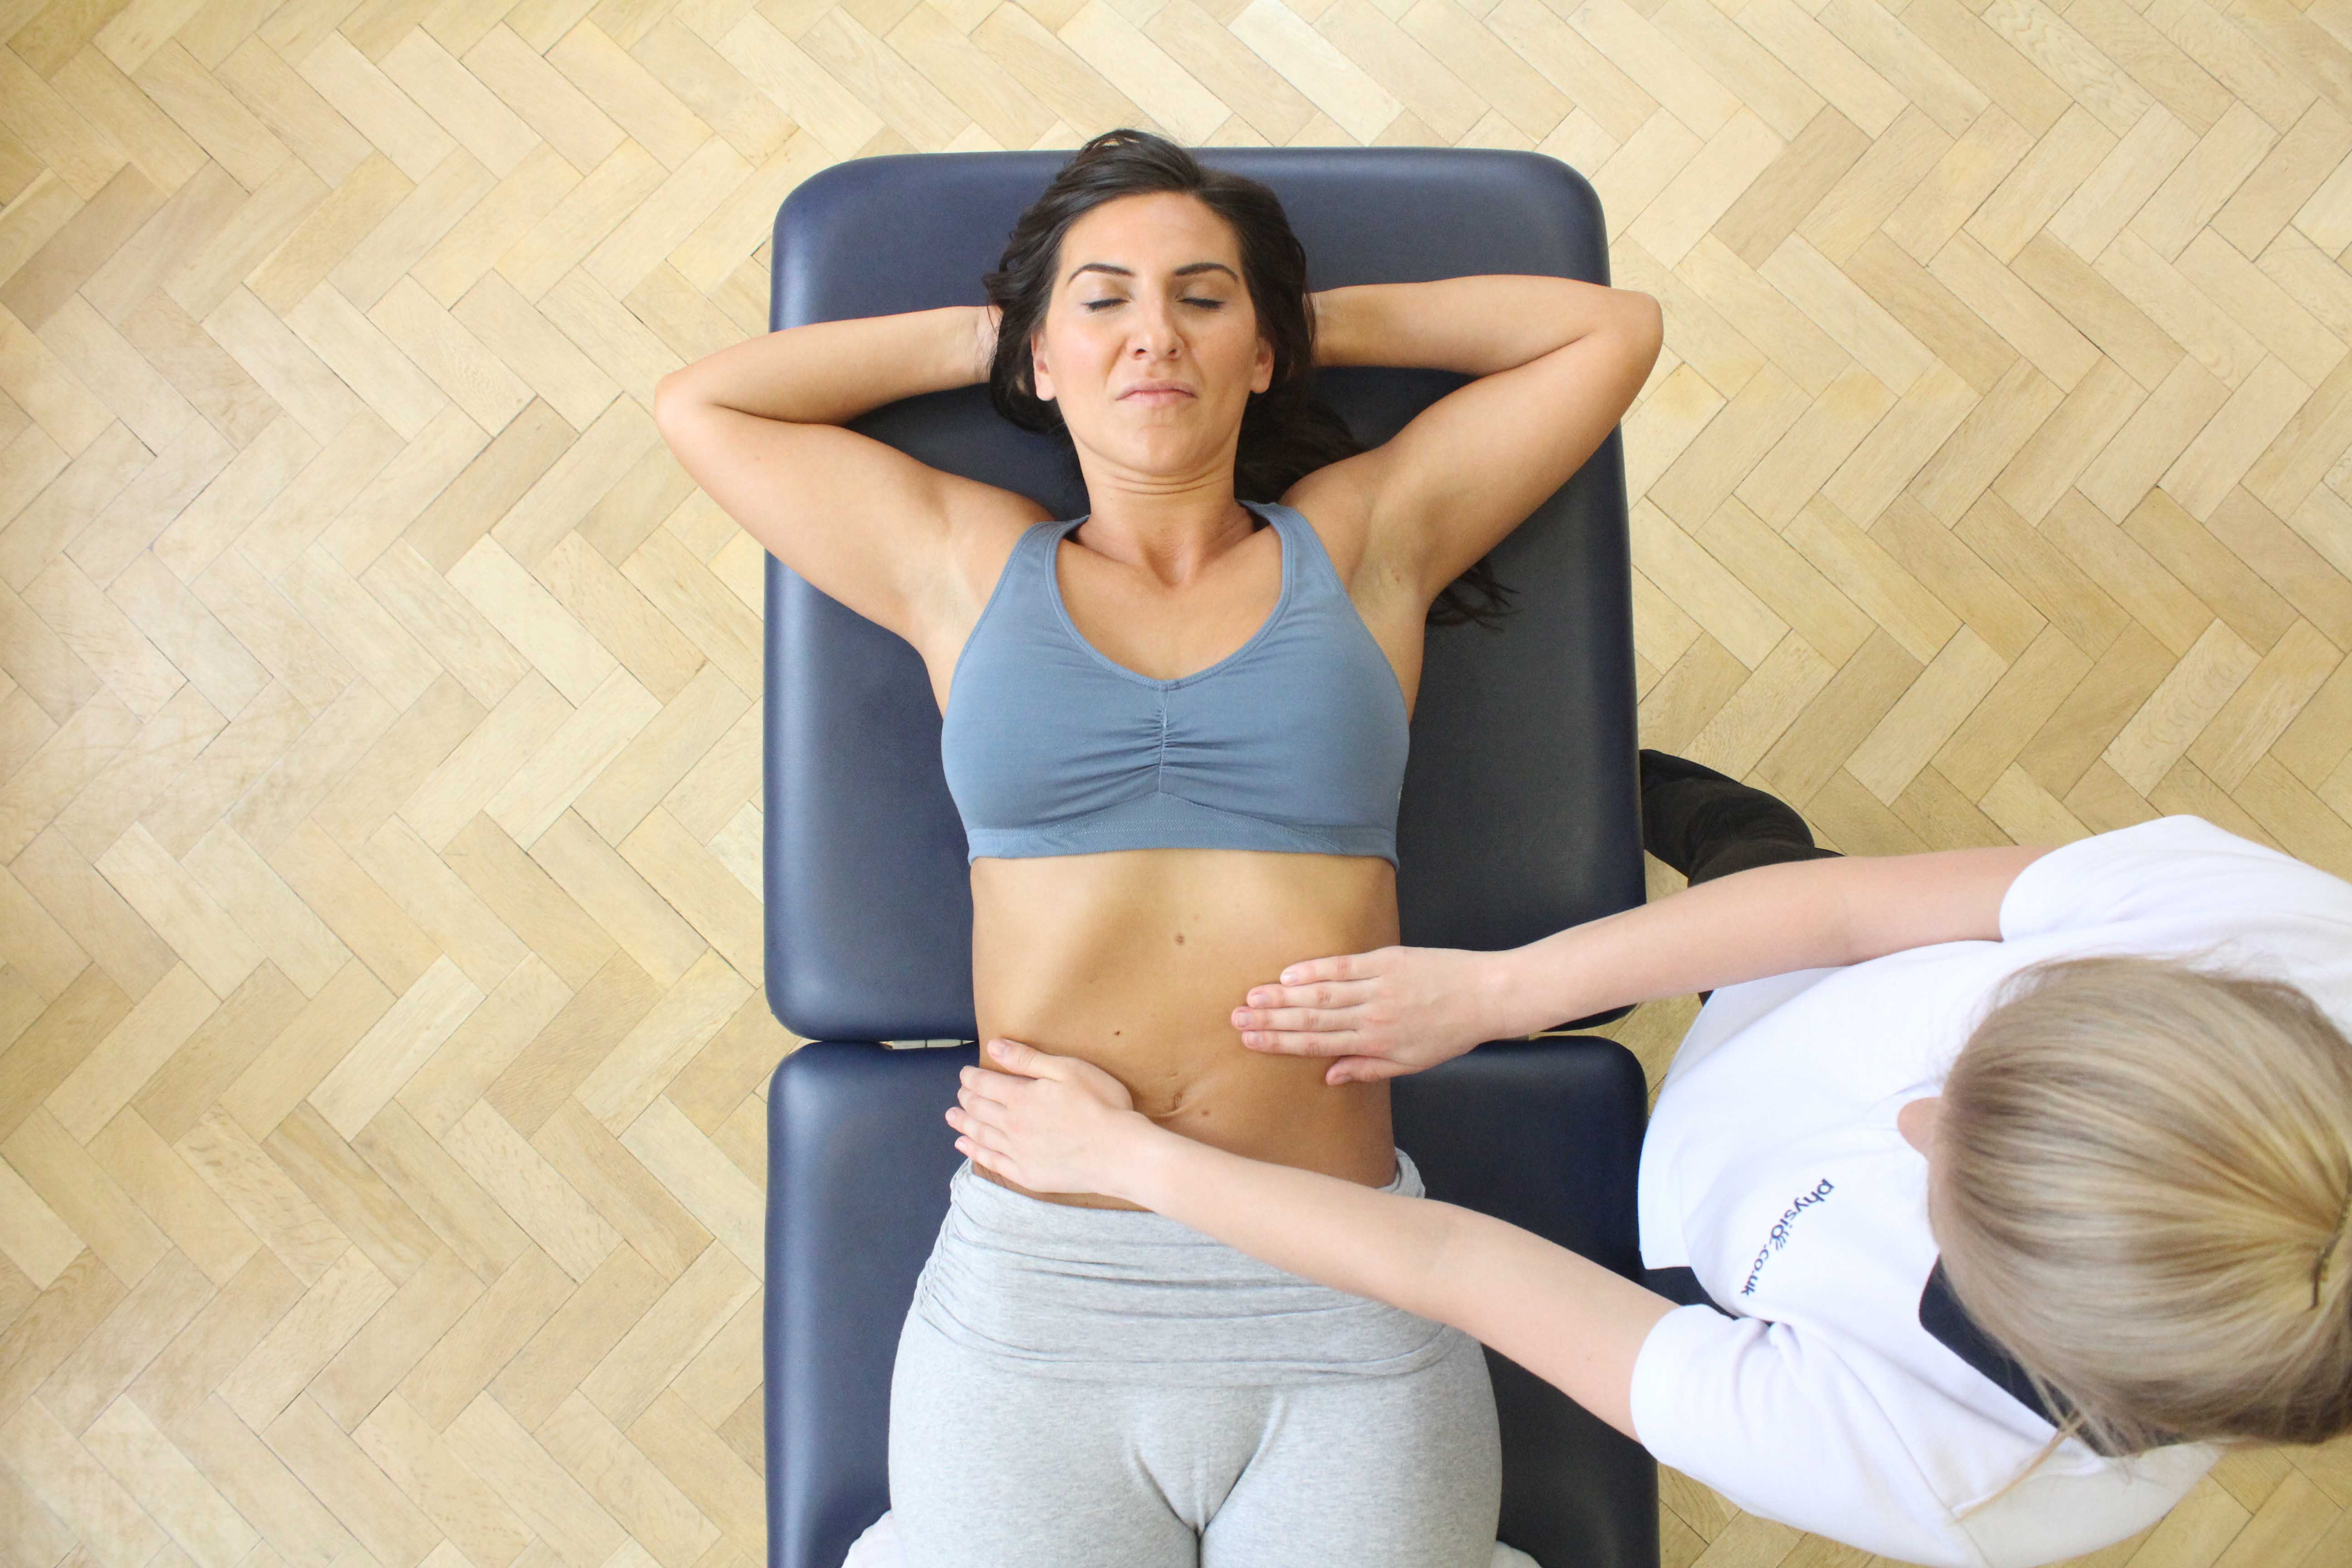 Core stability and pelvic floor exercises supervised by a experienced therapist